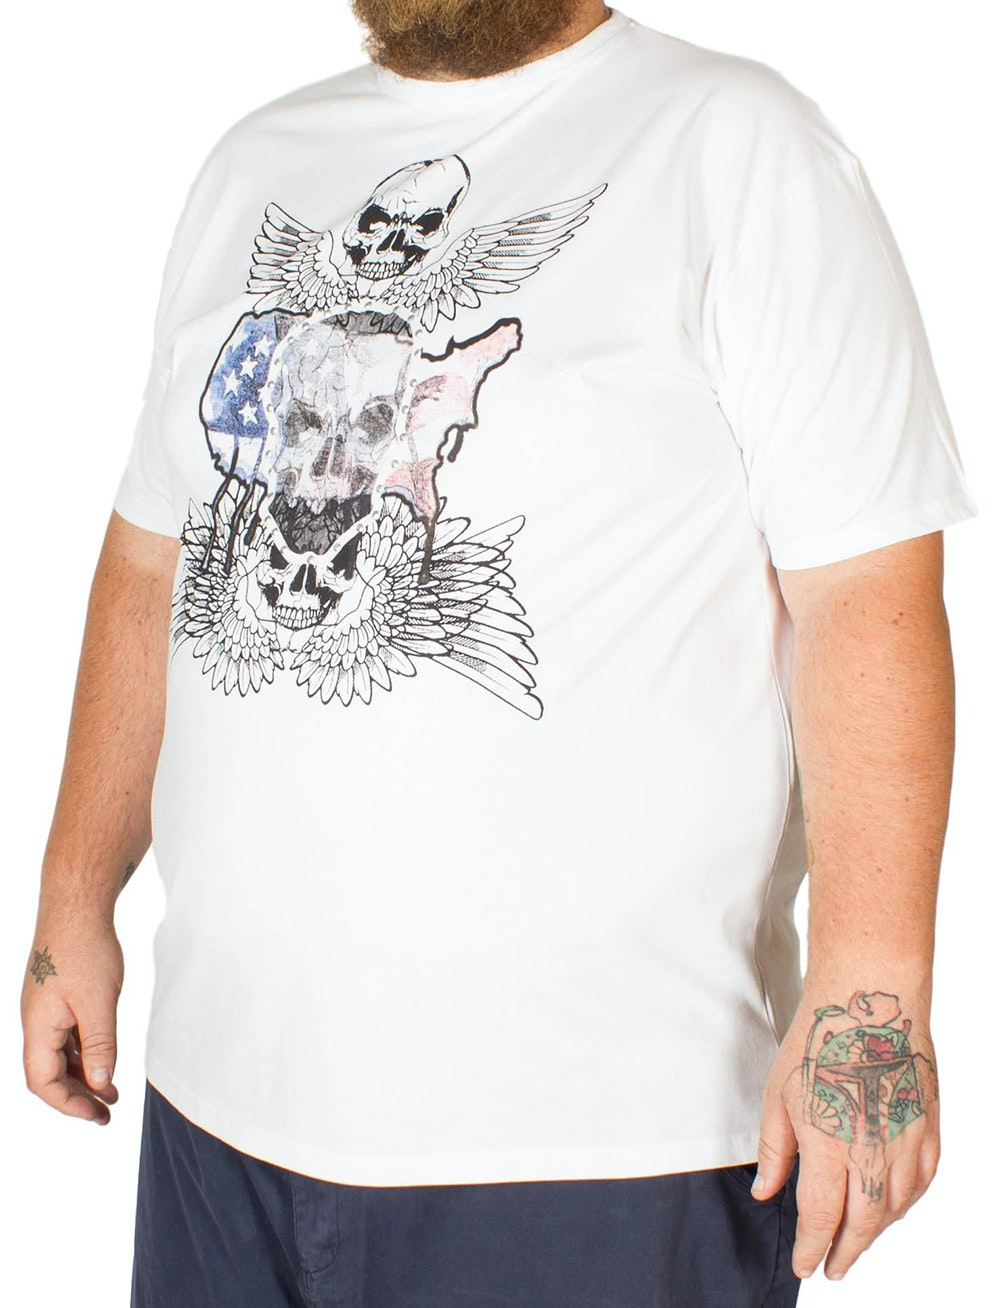 Metaphor Skull Wings Print T-Shirt White